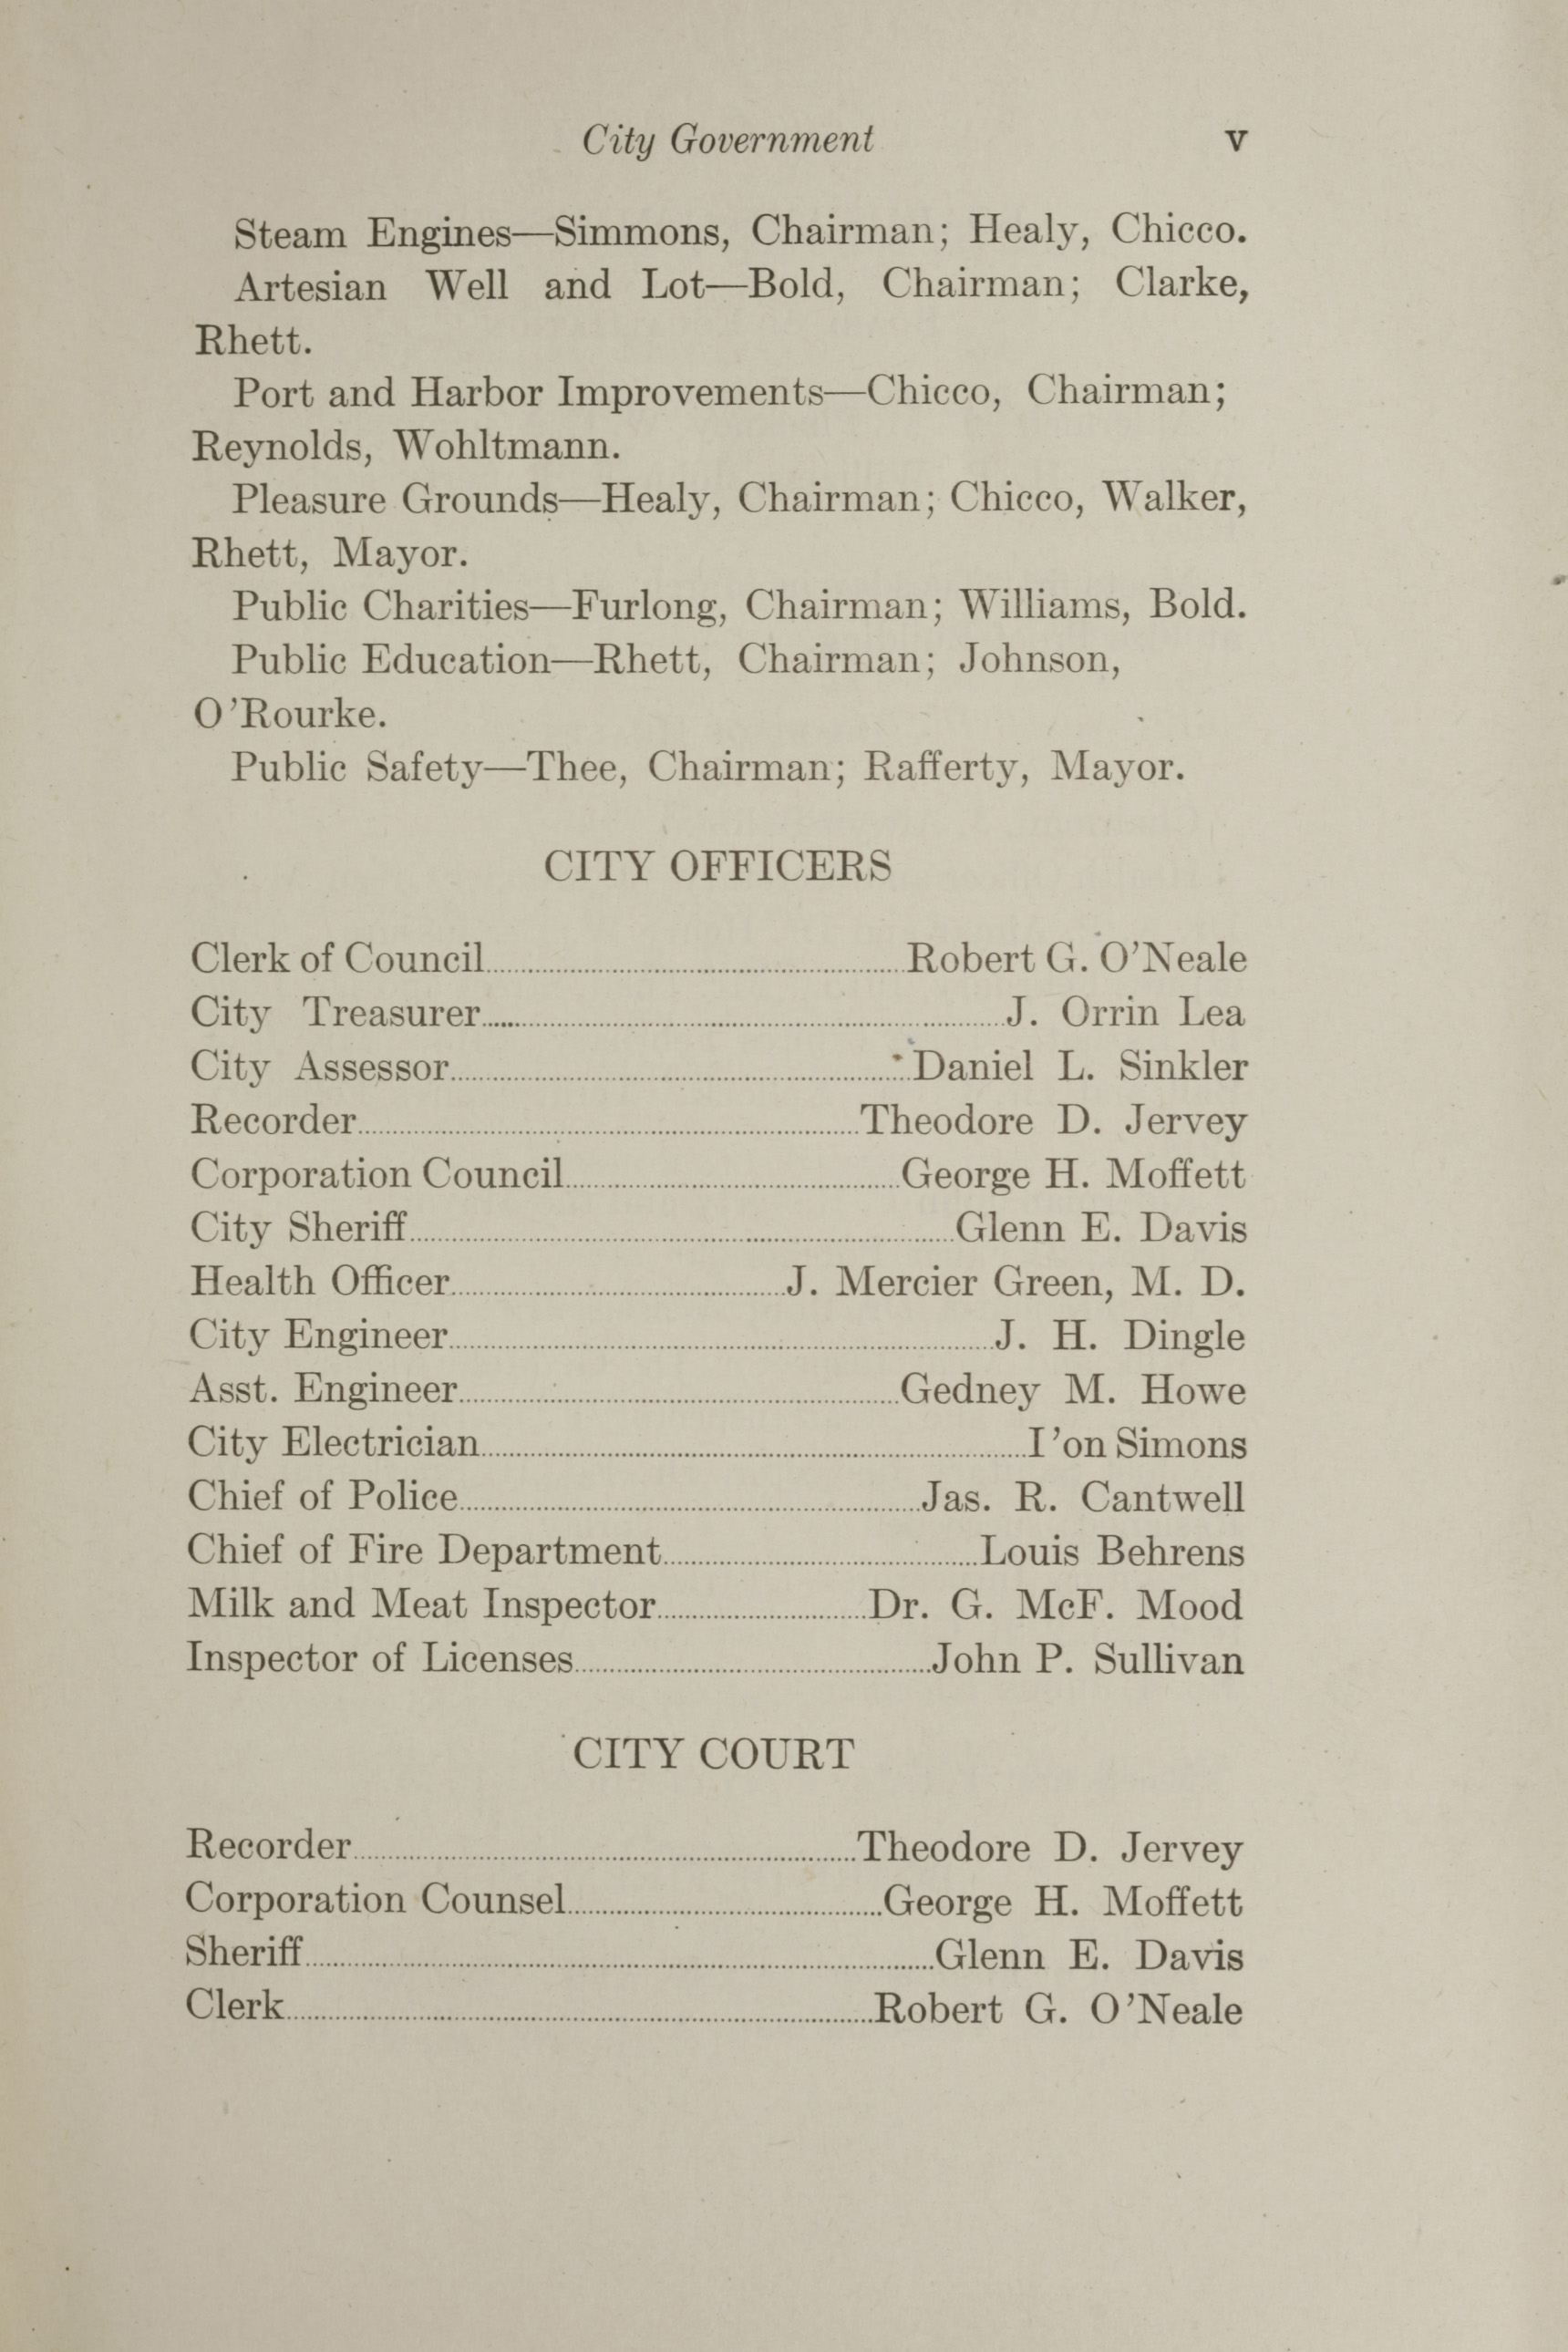 Charleston Yearbook, 1912, page v